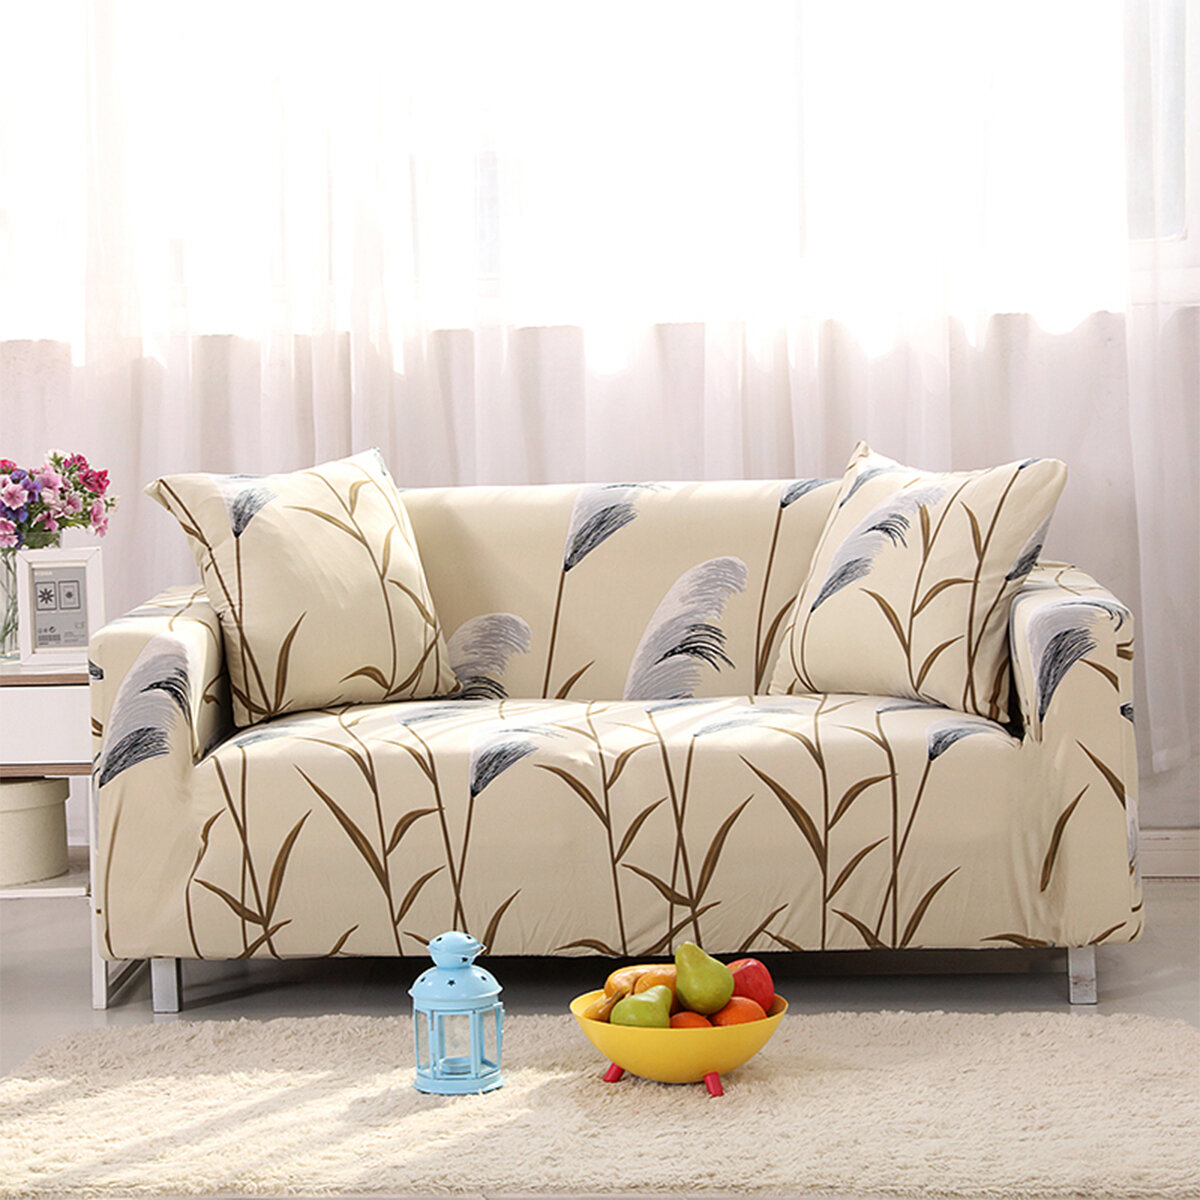 Seater Protector Washable Couch Cover